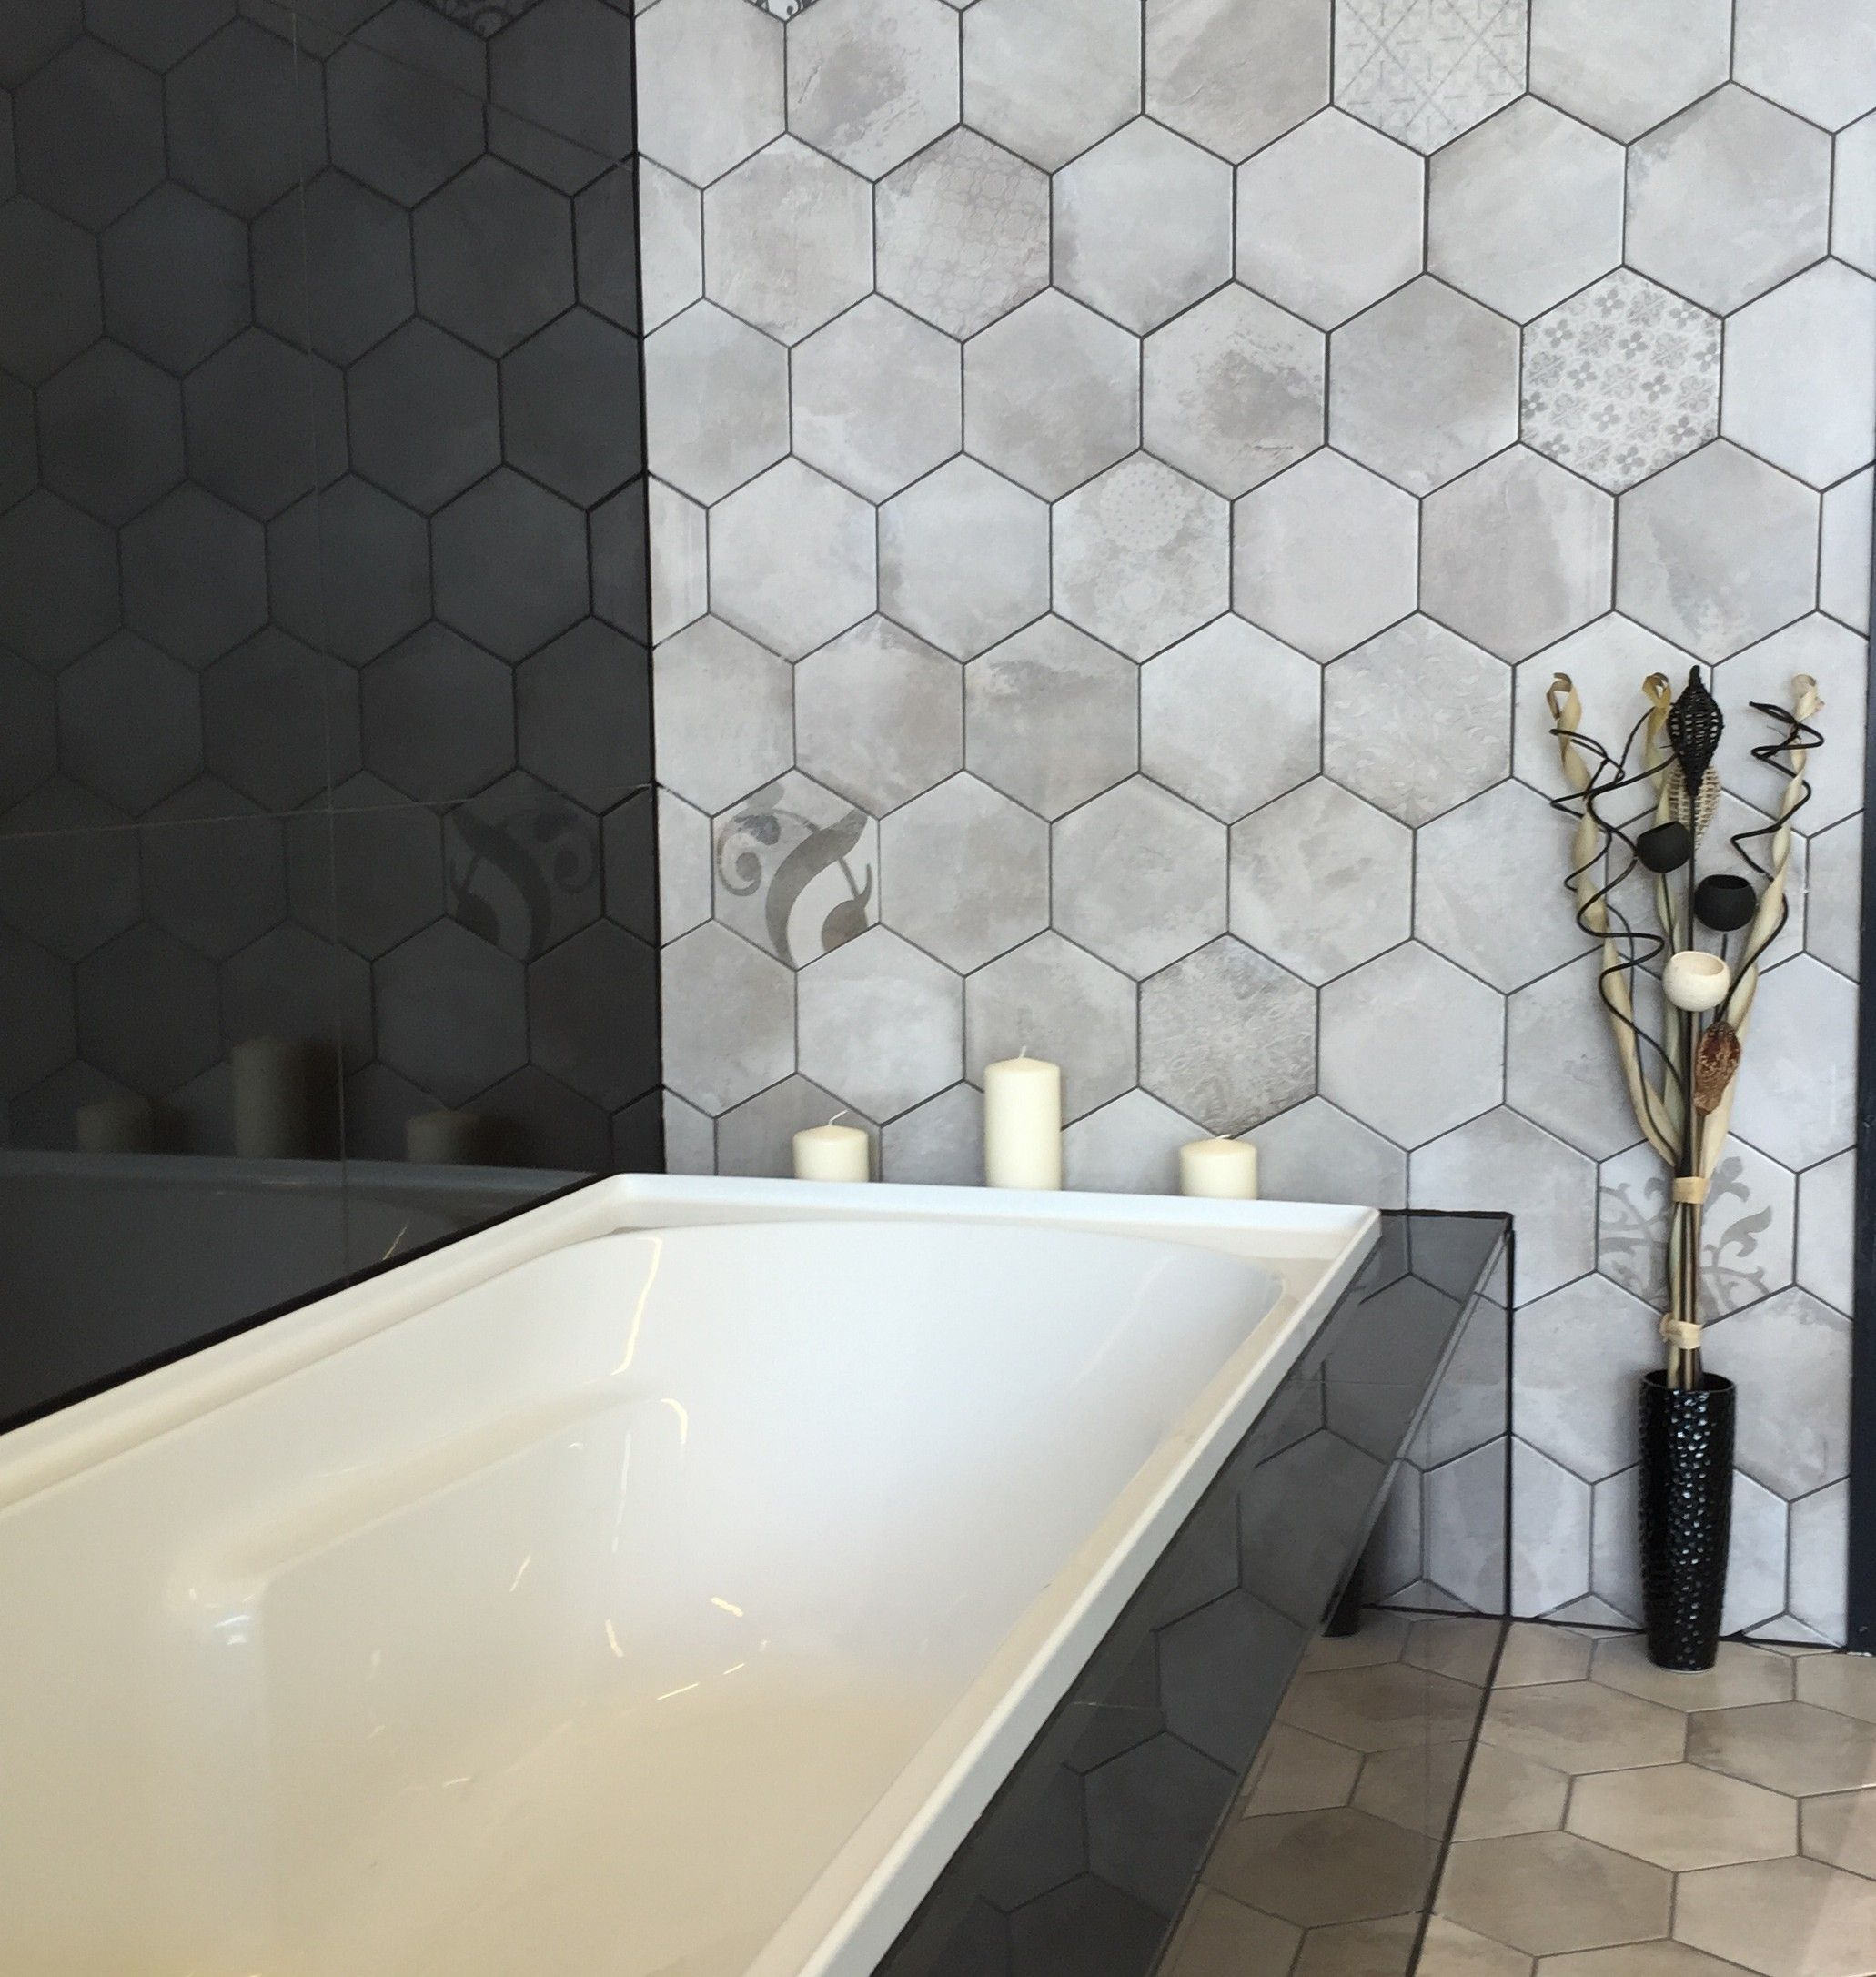 Domme grey hexagon 20x20 sqm floor tiles tiles our products domme grey hexagon 20x20 sqm floor tiles tiles our products dailygadgetfo Choice Image